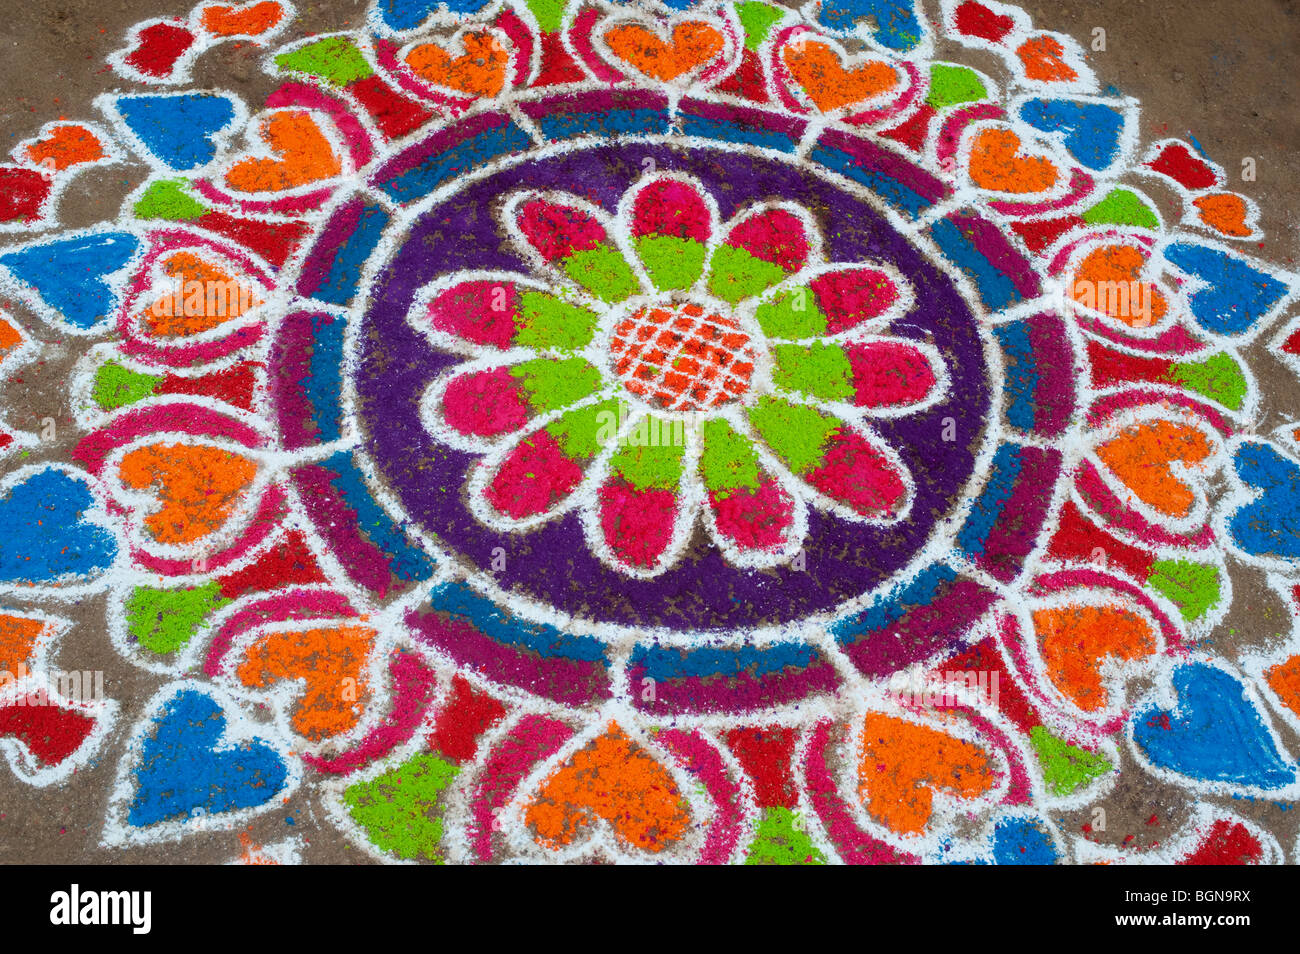 Rangoli designs in an Indian street , during the hindu festival of Sankranthi. Puttaparthi, Andhra Pradesh, India Stock Photo